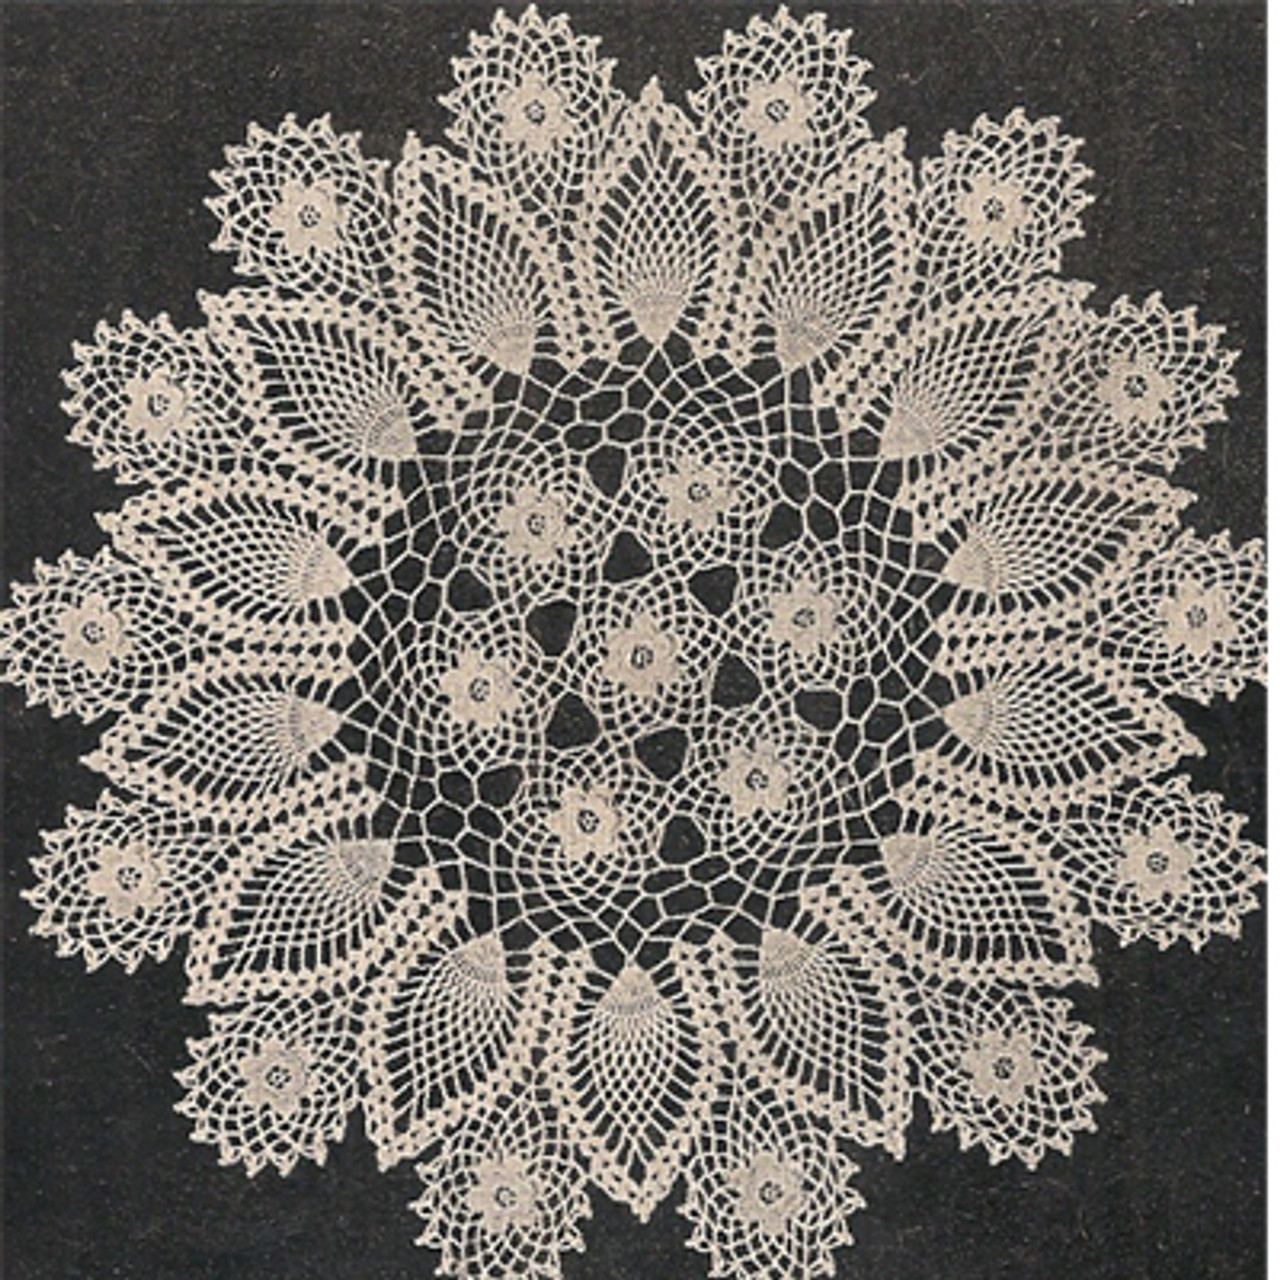 Workbasket Crochet Pineapple Doily Pattern